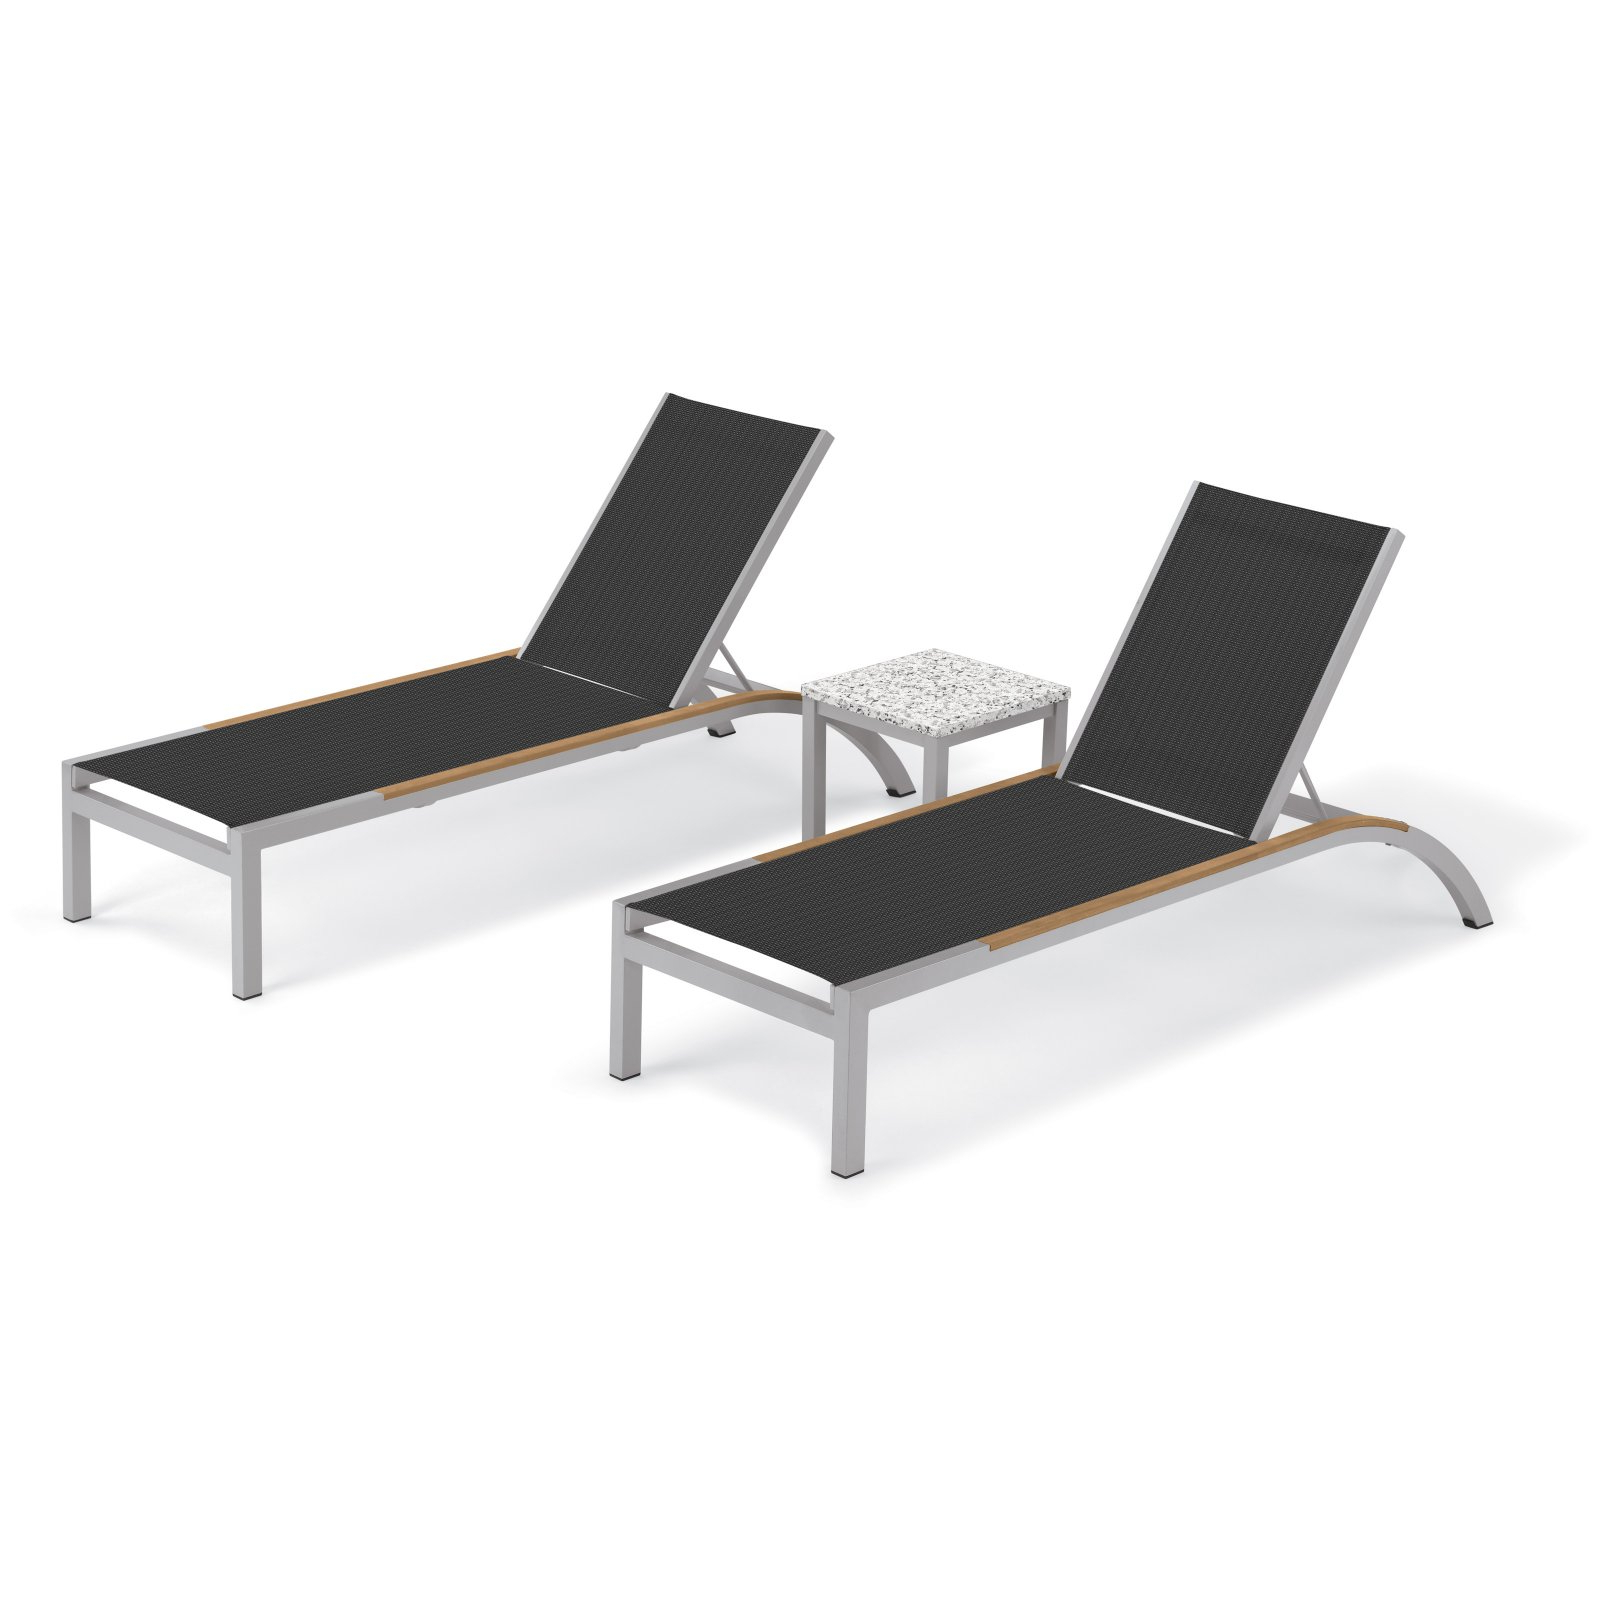 Fashionable Outdoor 3 Piece Chaise Lounger Sets With Table Throughout Oxford Garden Argento 3 Piece Stacking Outdoor Chaise Lounge (View 10 of 25)